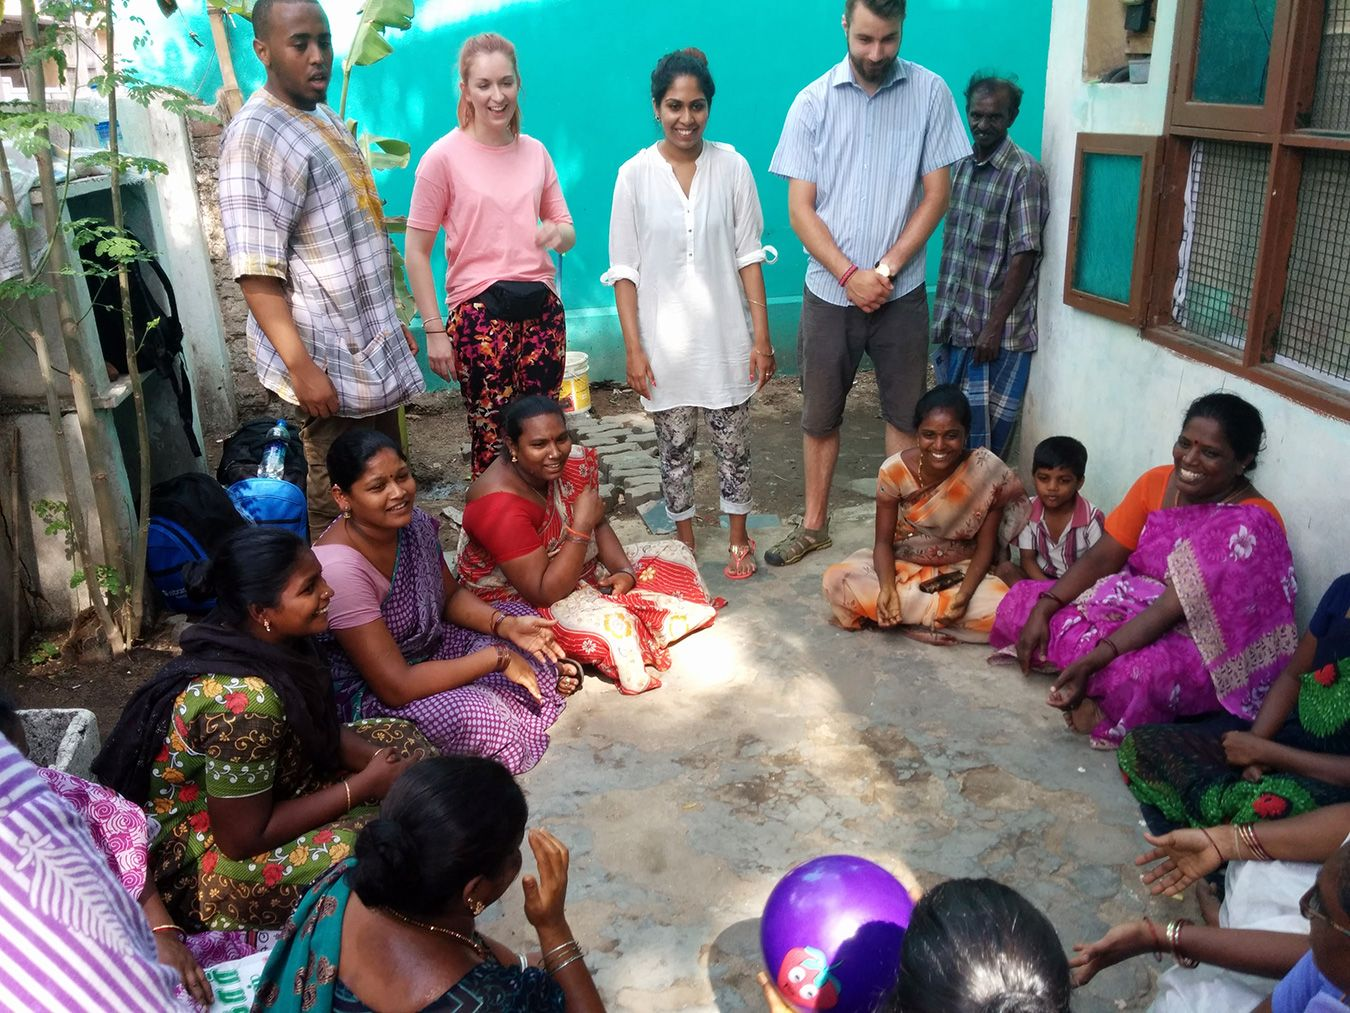 The Kingston University volunteers ran English lessons for mothers whose families had been displaced by the 2004 tsunami.